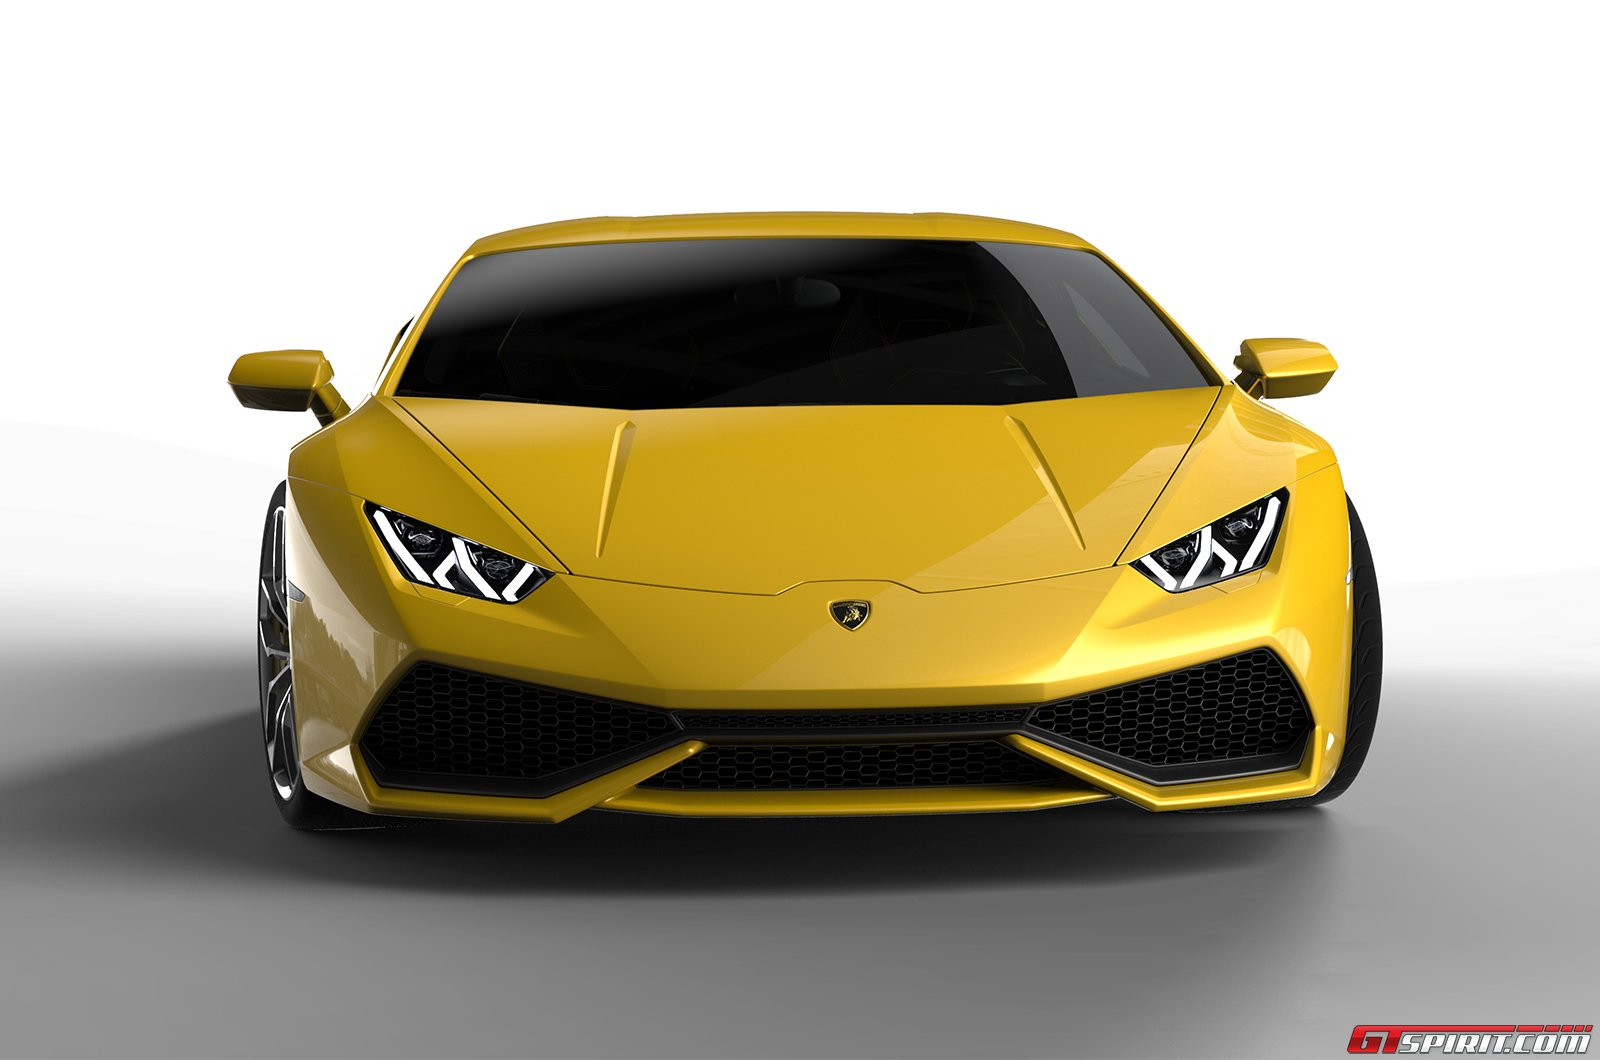 lamborghini huracan pricing details revealed gtspirit. Black Bedroom Furniture Sets. Home Design Ideas